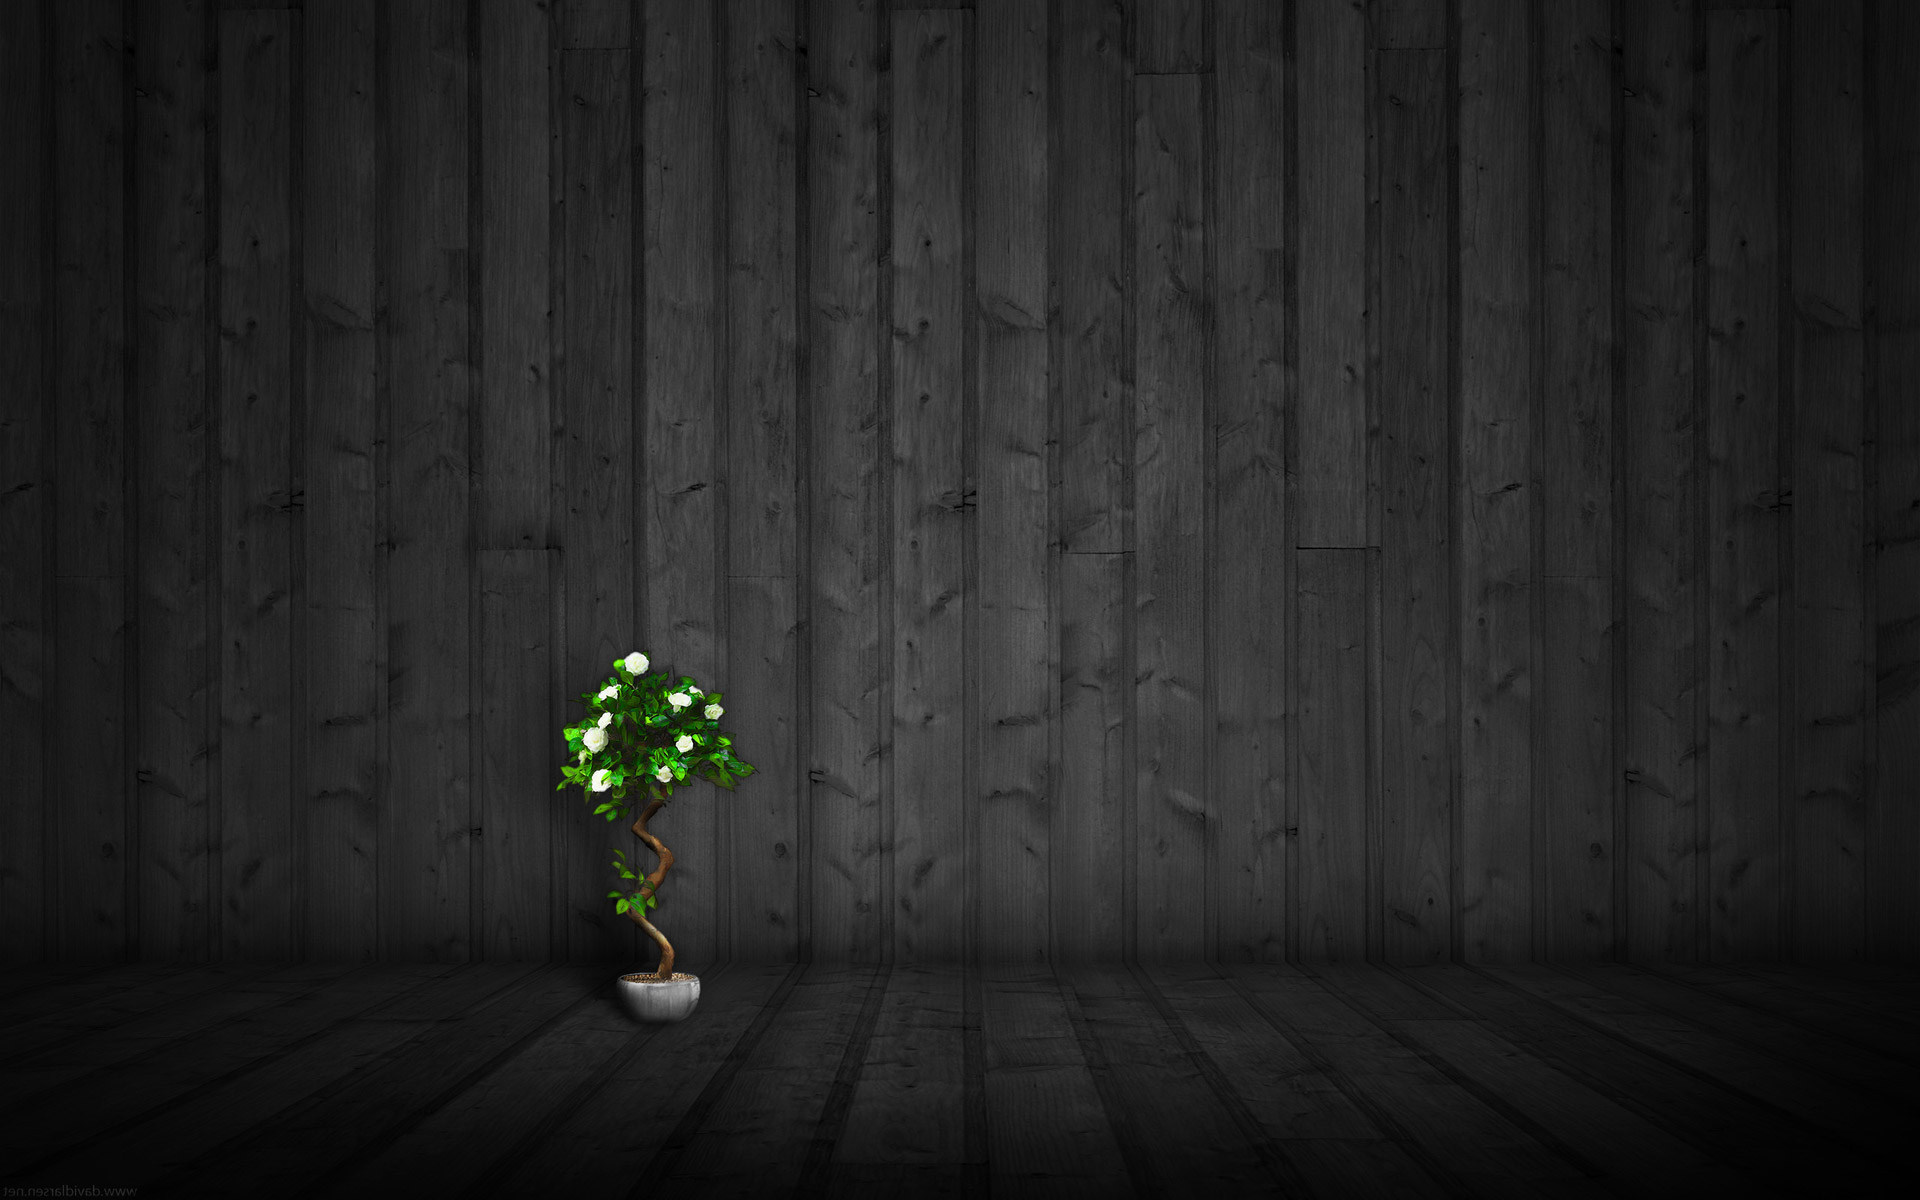 . Black Wood Wallpapers High Quality   Download Free